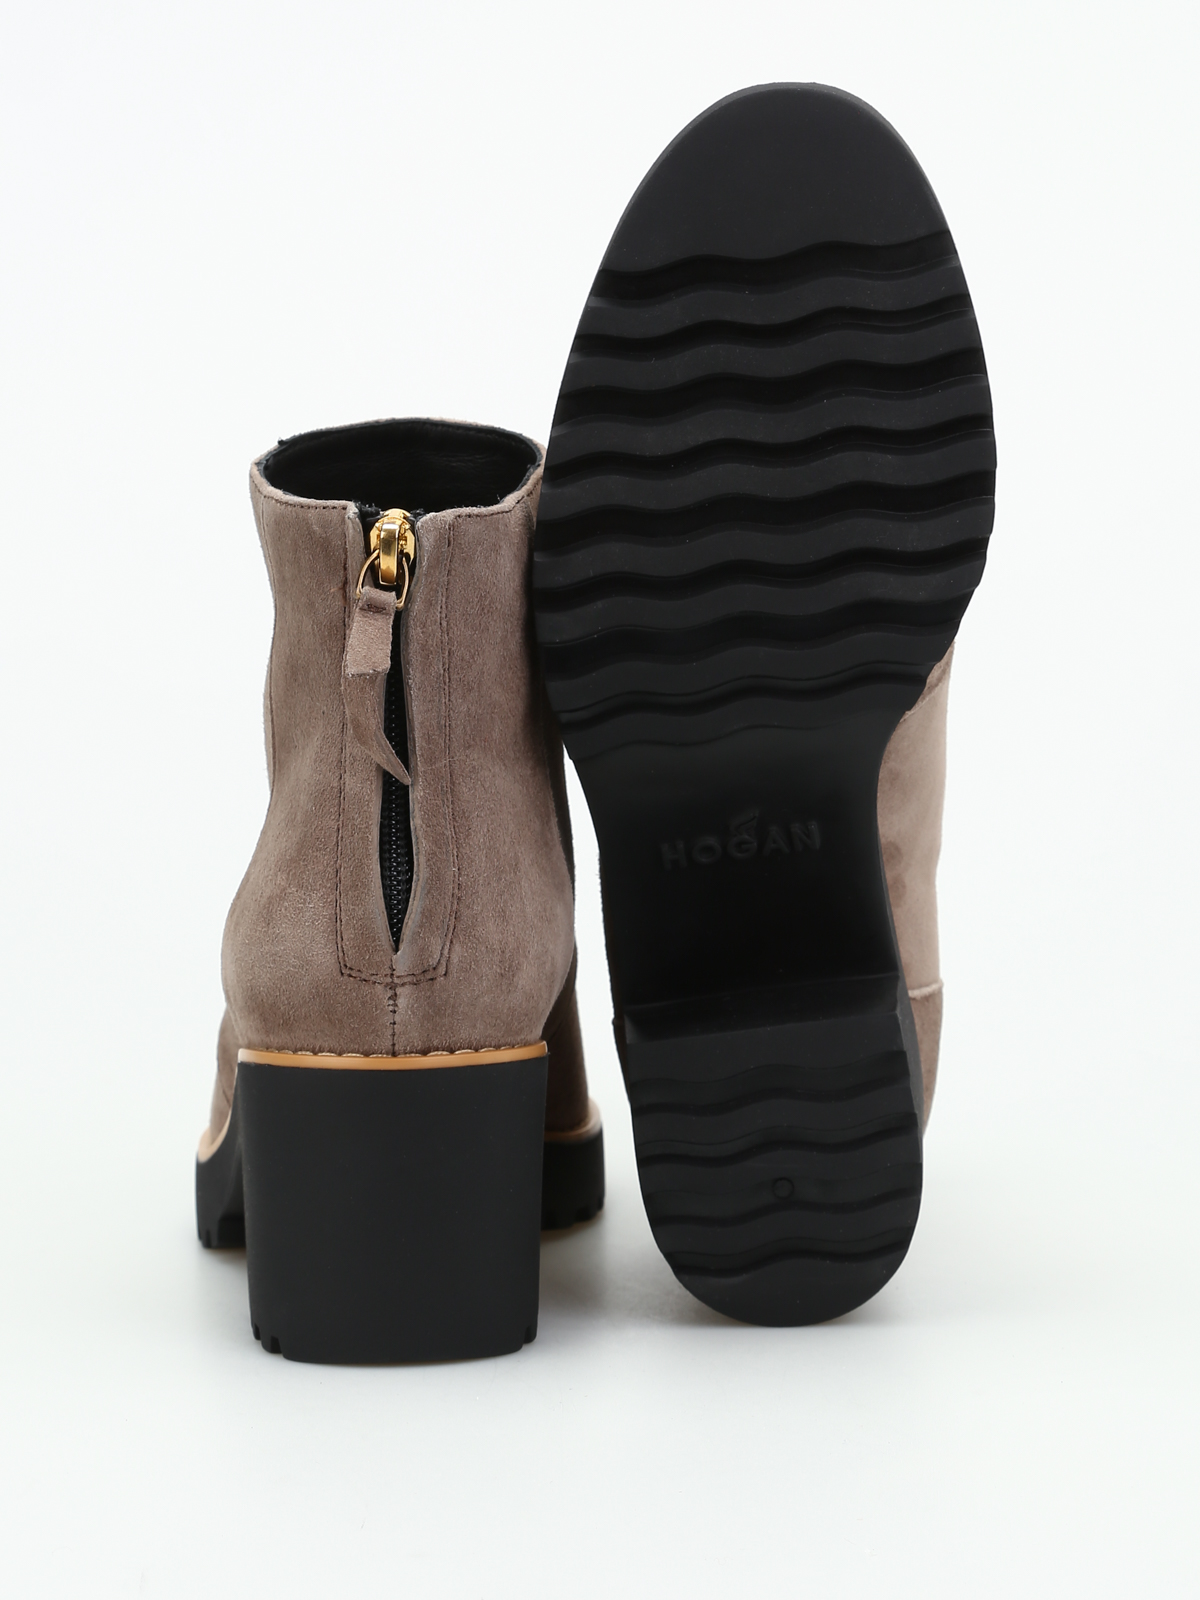 Really Sale Online Clearance Low Cost Hogan H277 Ankle Boots In Suede Buy Cheap Clearance Visit I04HcjeRL